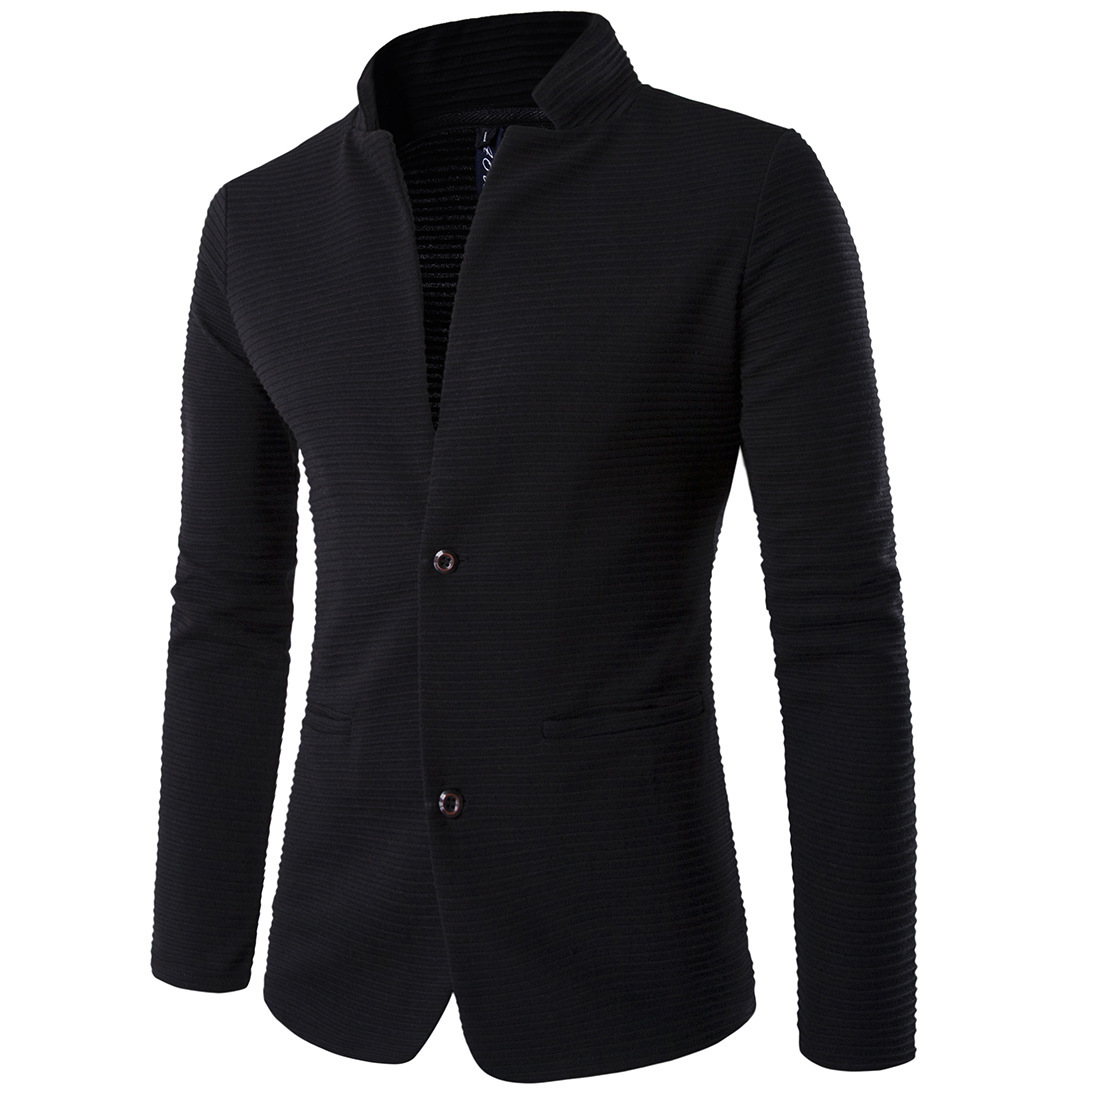 Men'S Wear Autumn And Winter Korean-style Casual Coat Stand Collar Suit Slim Fit Joint Suit Xy618